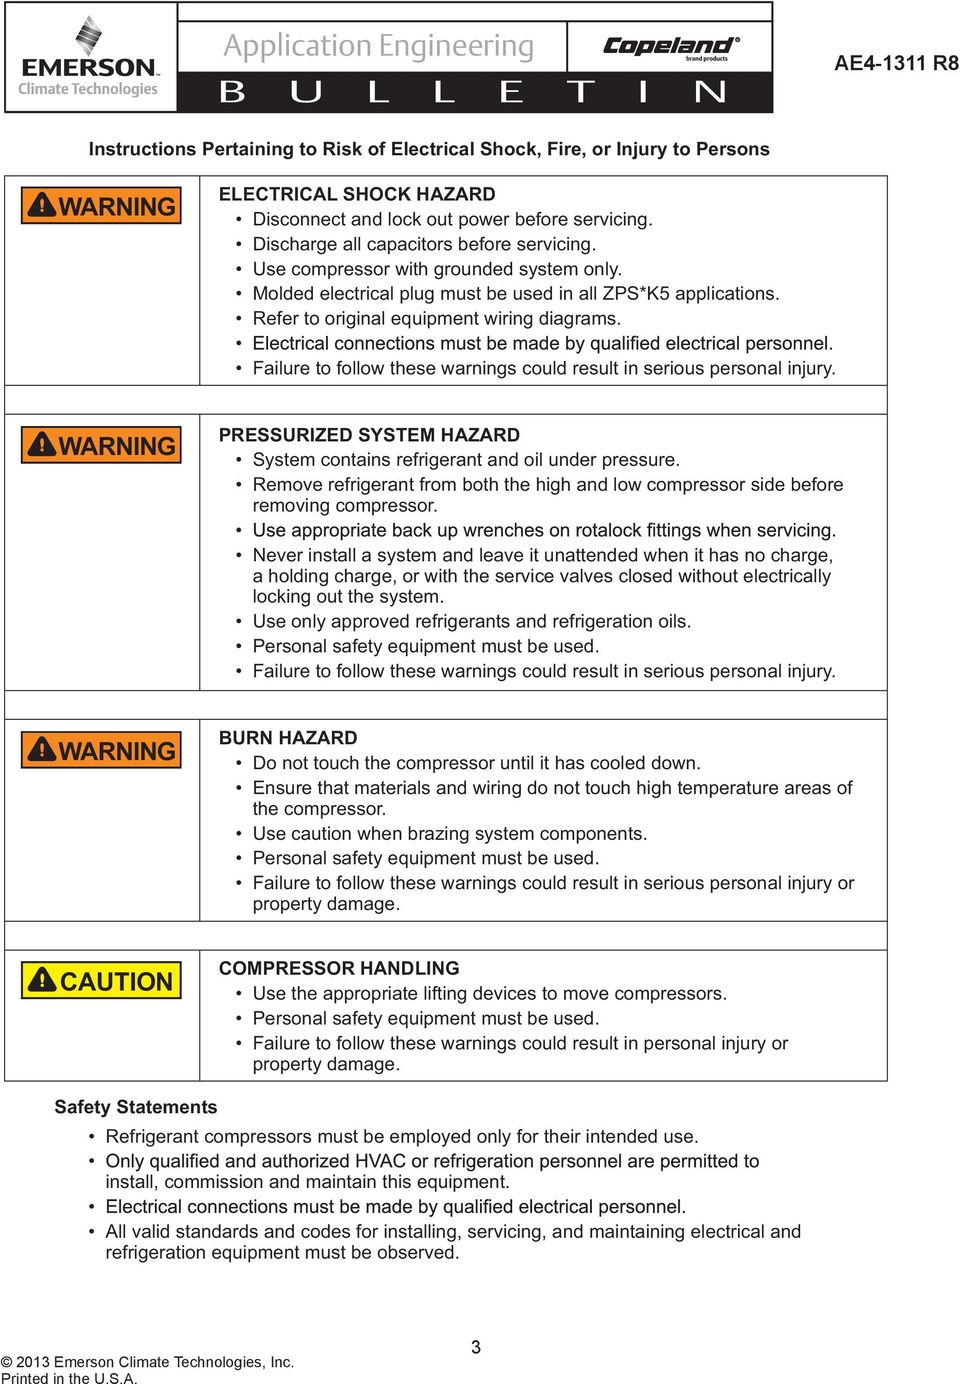 Application Engineering Pdf Refrigeration Solenoid Wiring Diagram Failure To Follow These Warnings Could Result In Serious Personal Injury Waning Pessuized System Hazad